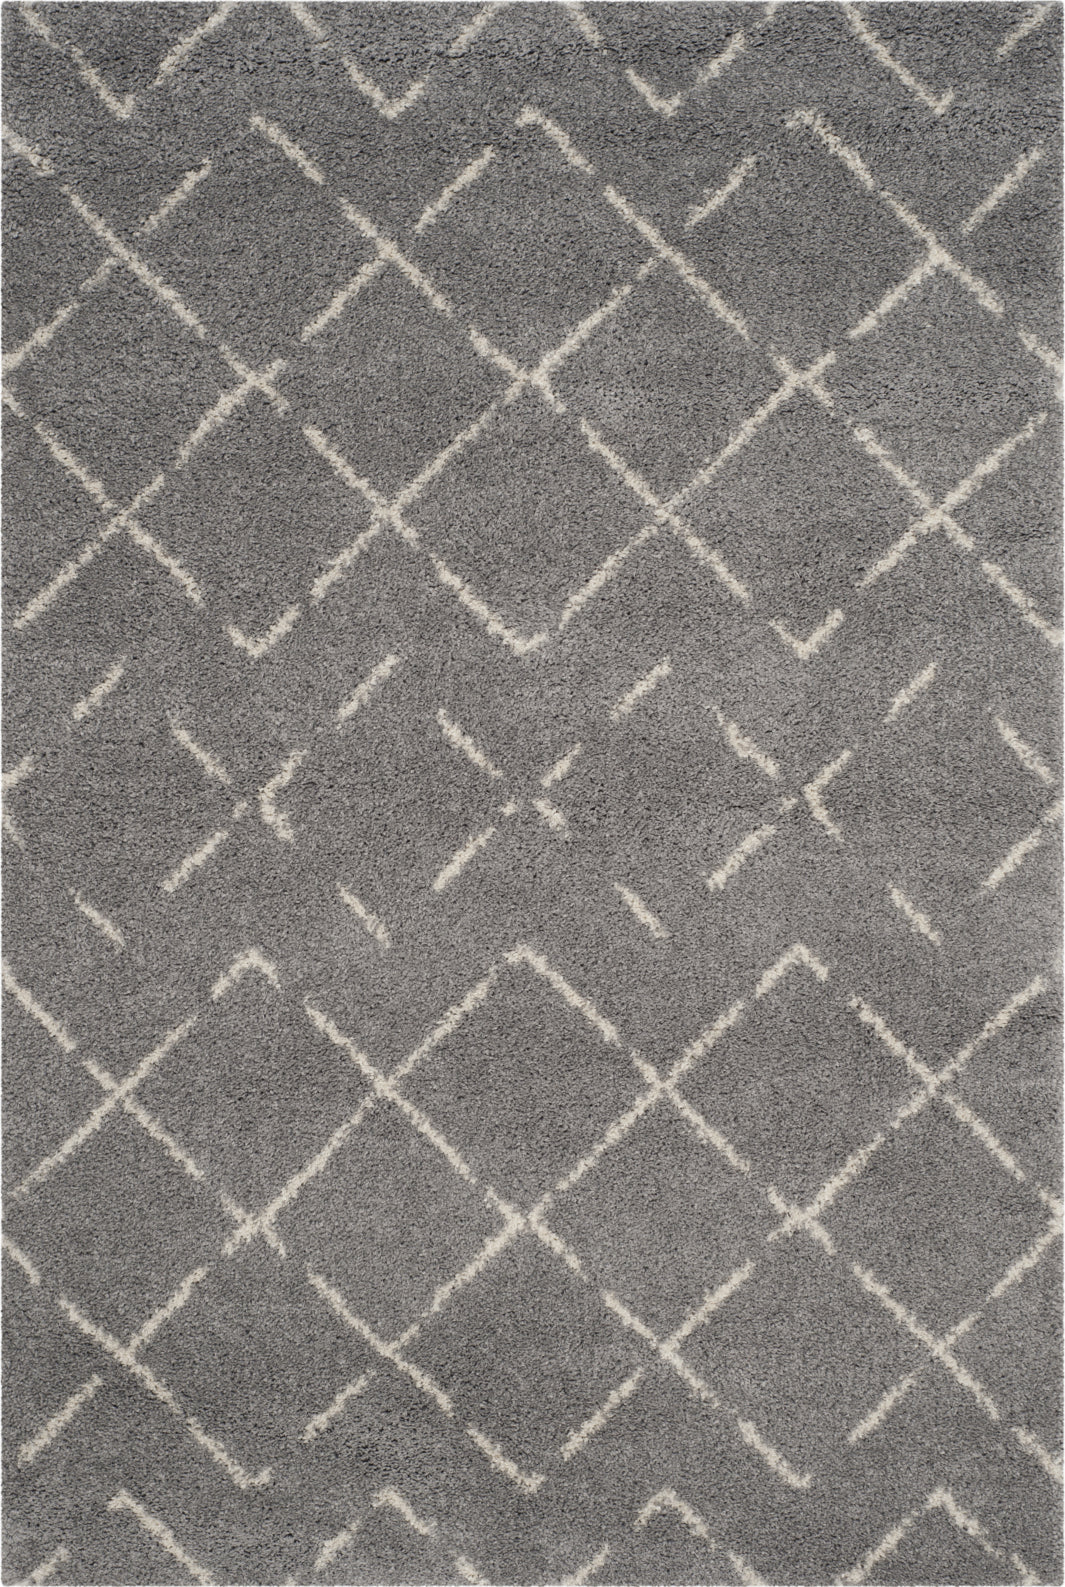 Safavieh Arizona Shag ASG743D Grey/Ivory Area Rug main image